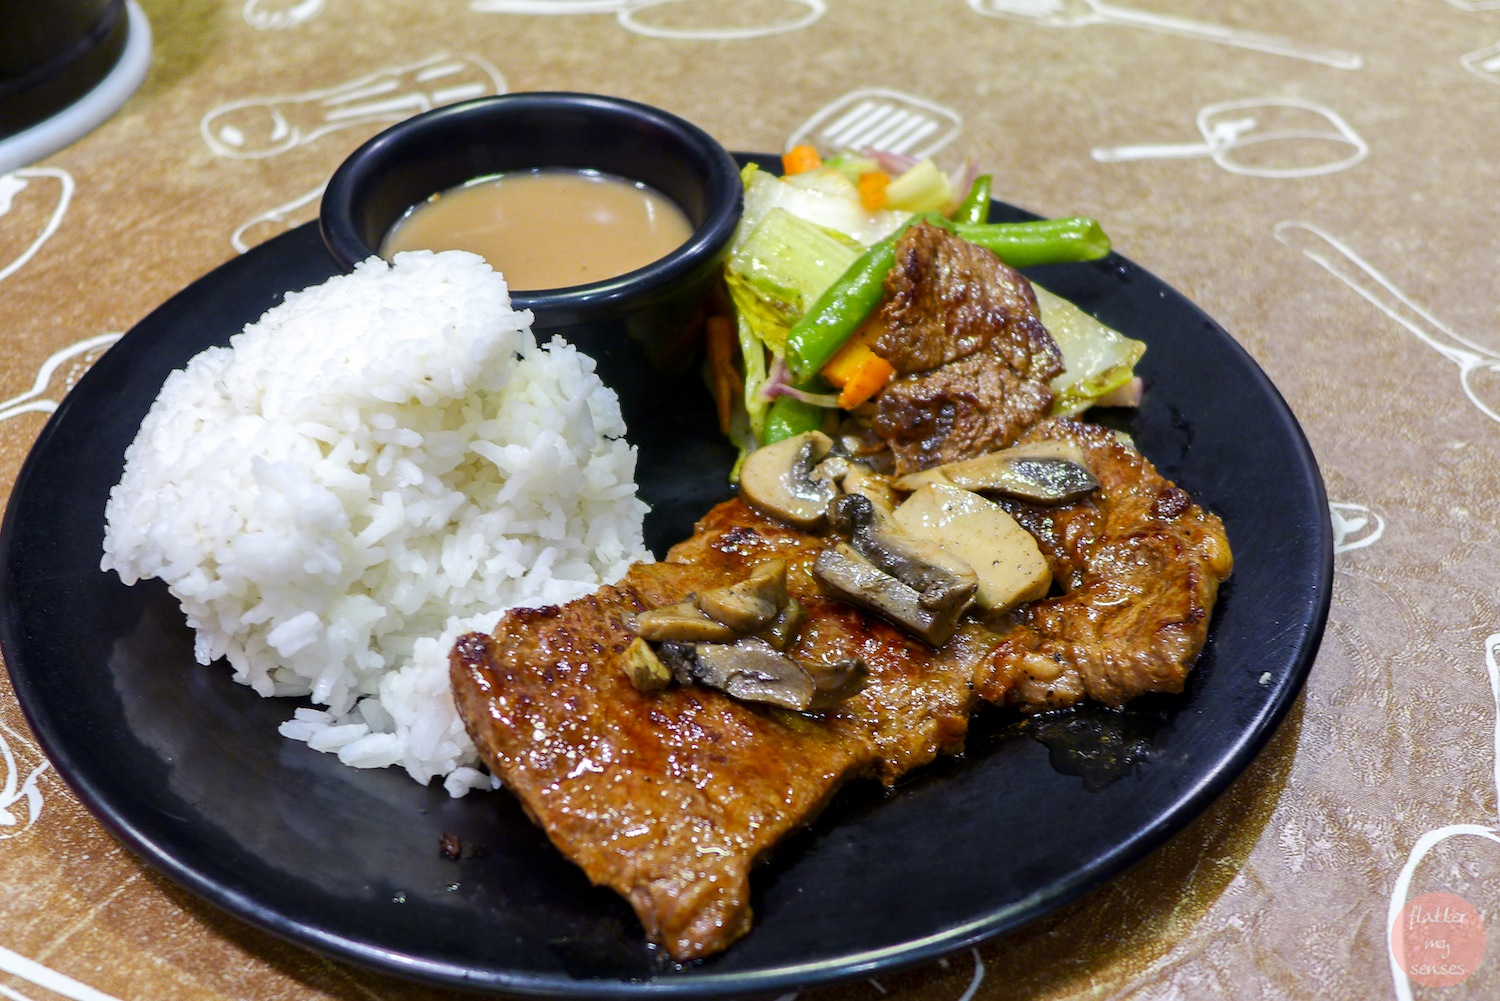 Solo Steak (Php 199). Our signature US Rib-Eye and Rice served with Gravy or BBQ Sauce